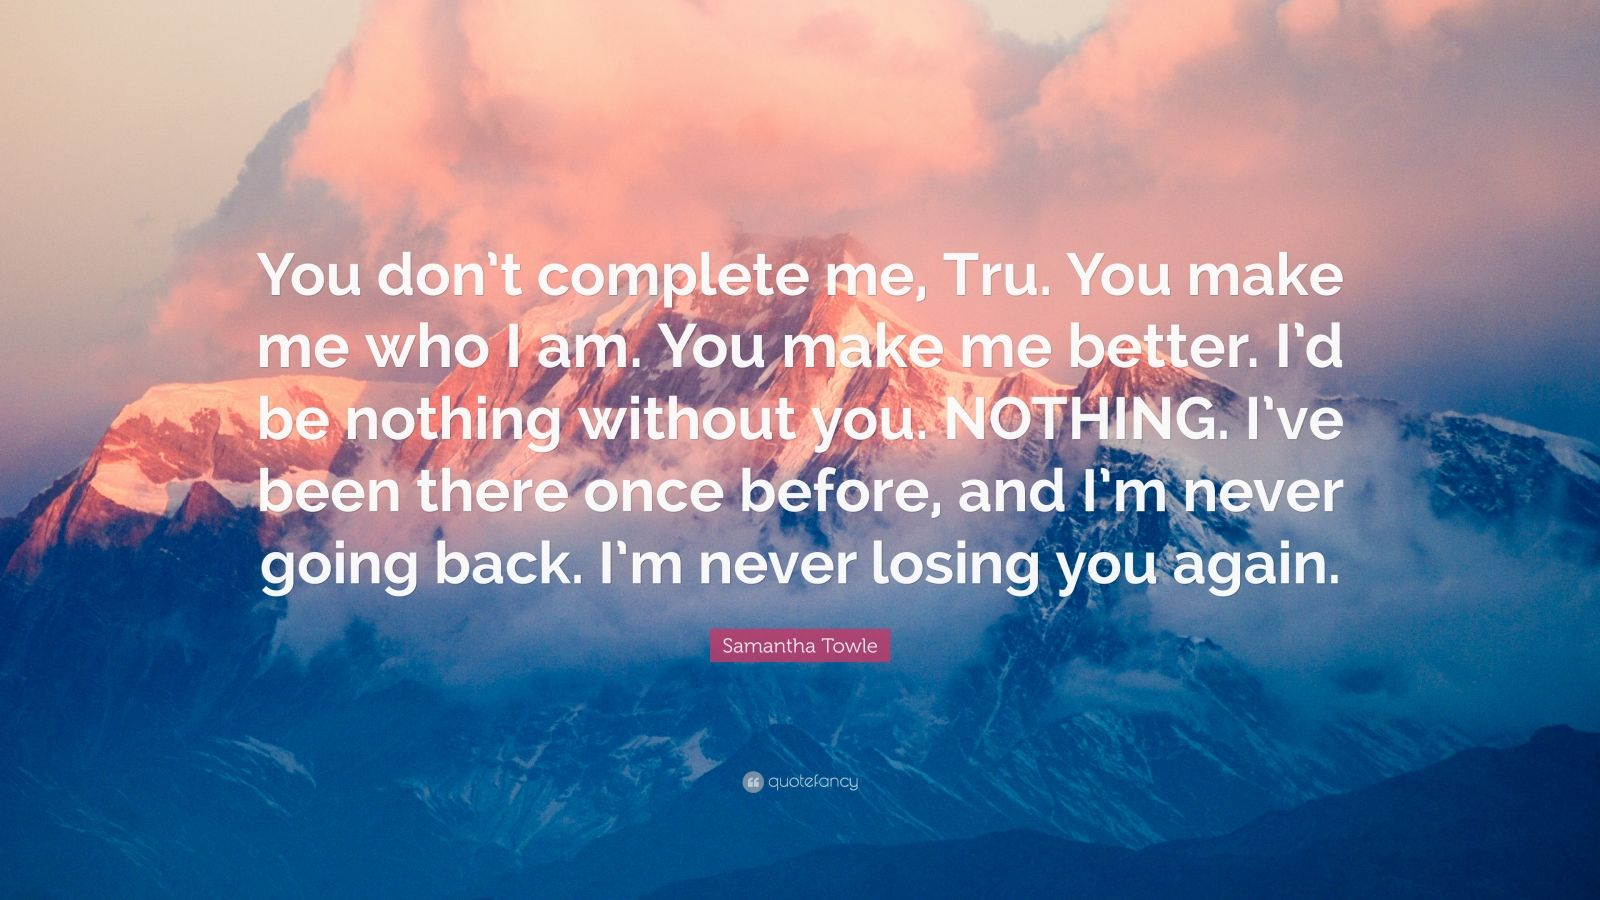 "Samantha Towle Quote: ""You don't complete me, Tru. You make me who I am. You make me better. I'd be nothing without you. NOTHING. I've been there once before, and I'm never going back. I'm never losing you again."""